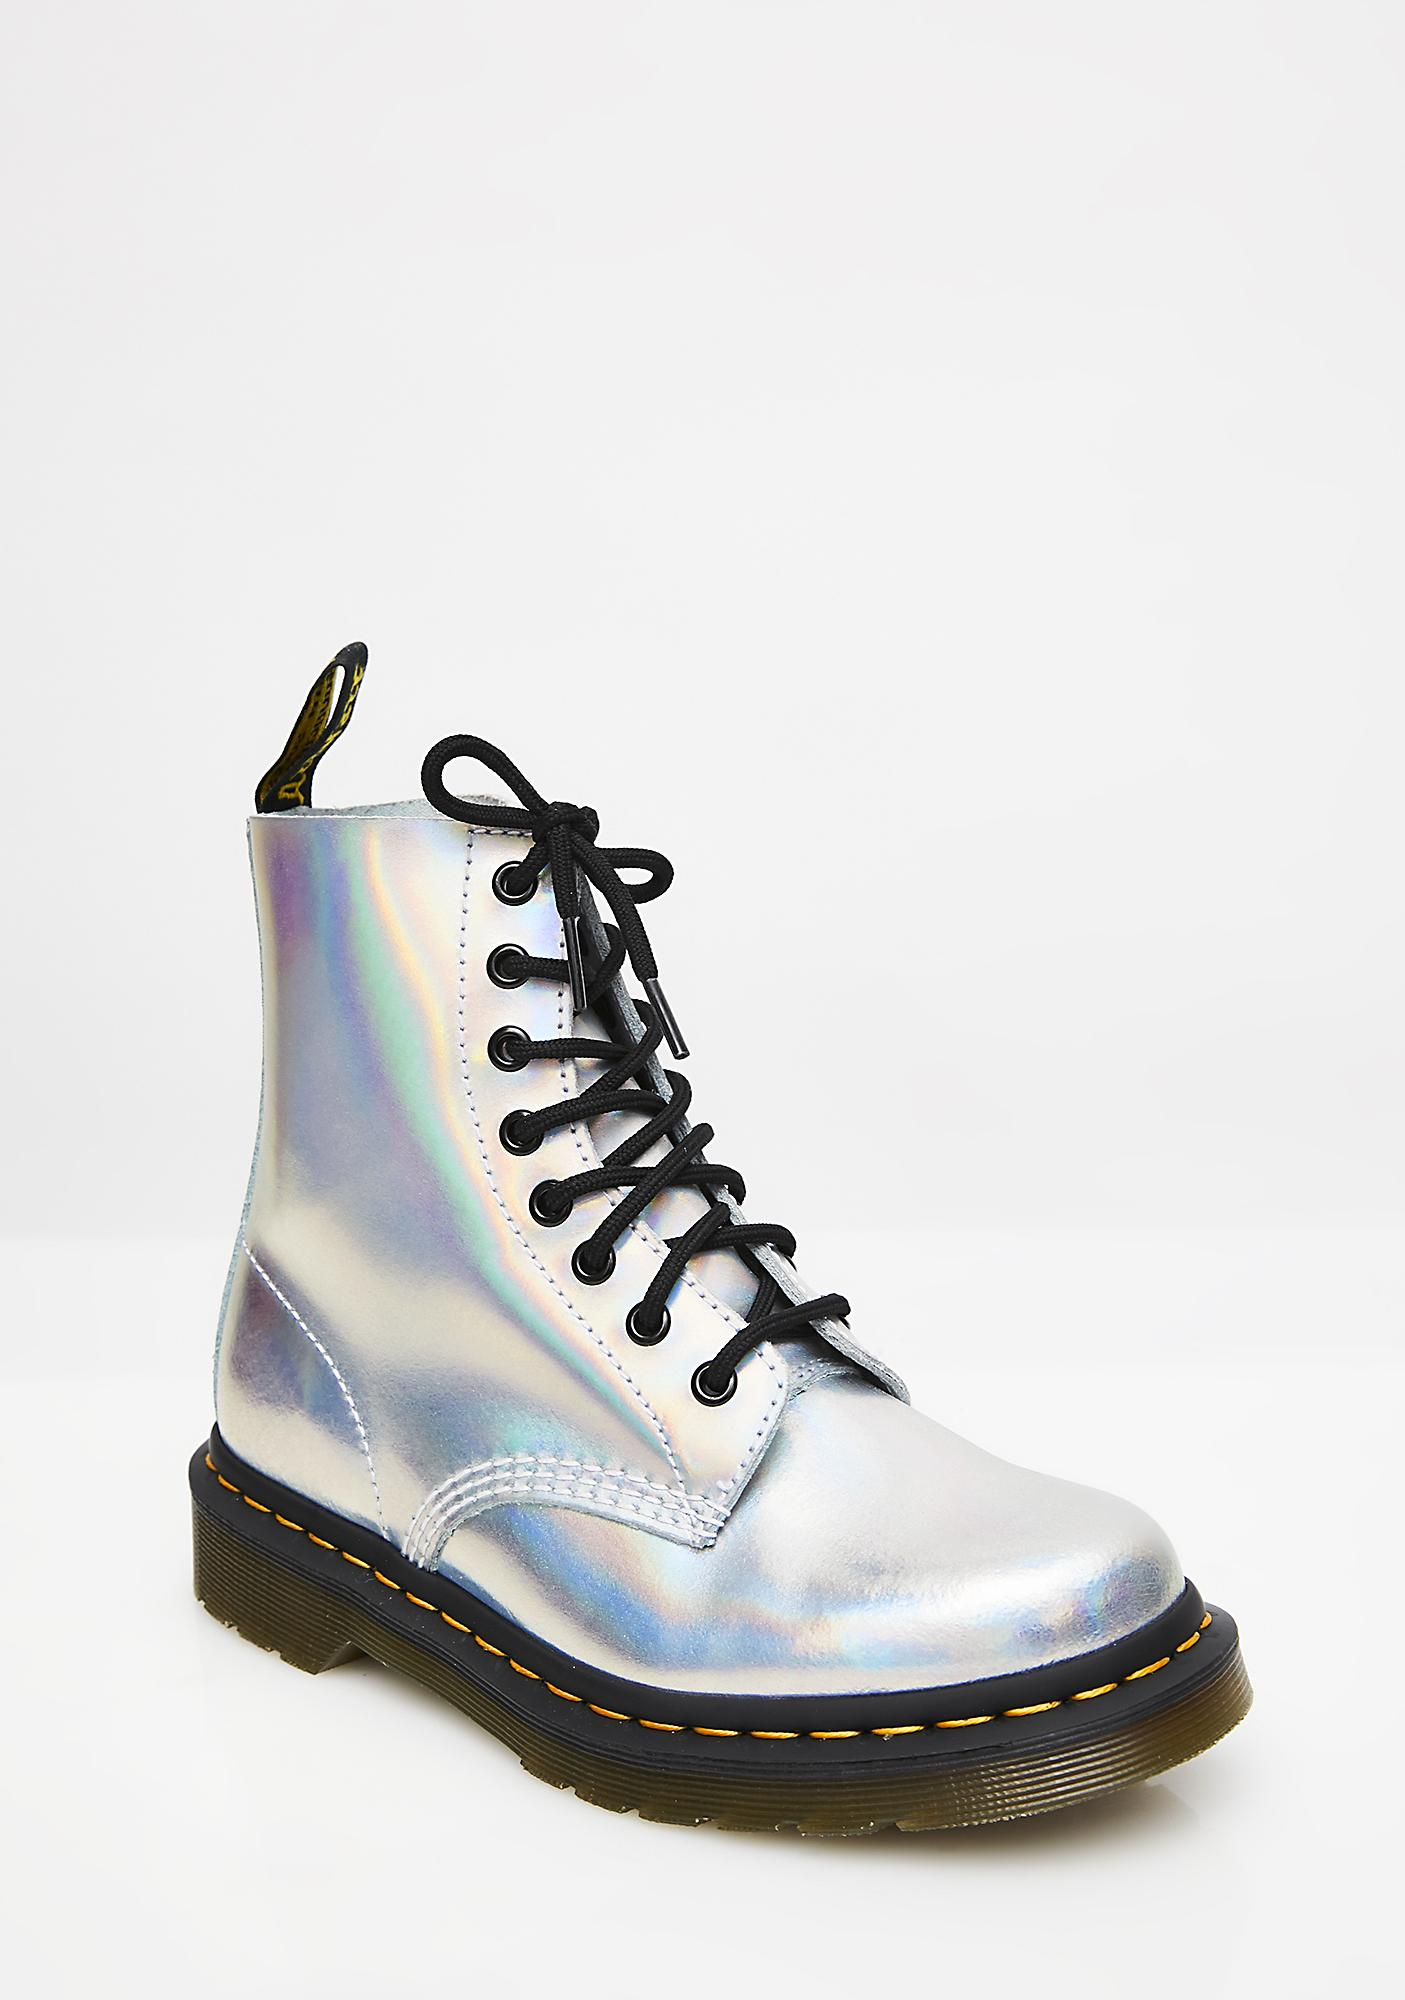 ... Dr. Martens Silver Iced Metallic Pascal Boots ... 5889af787cf7